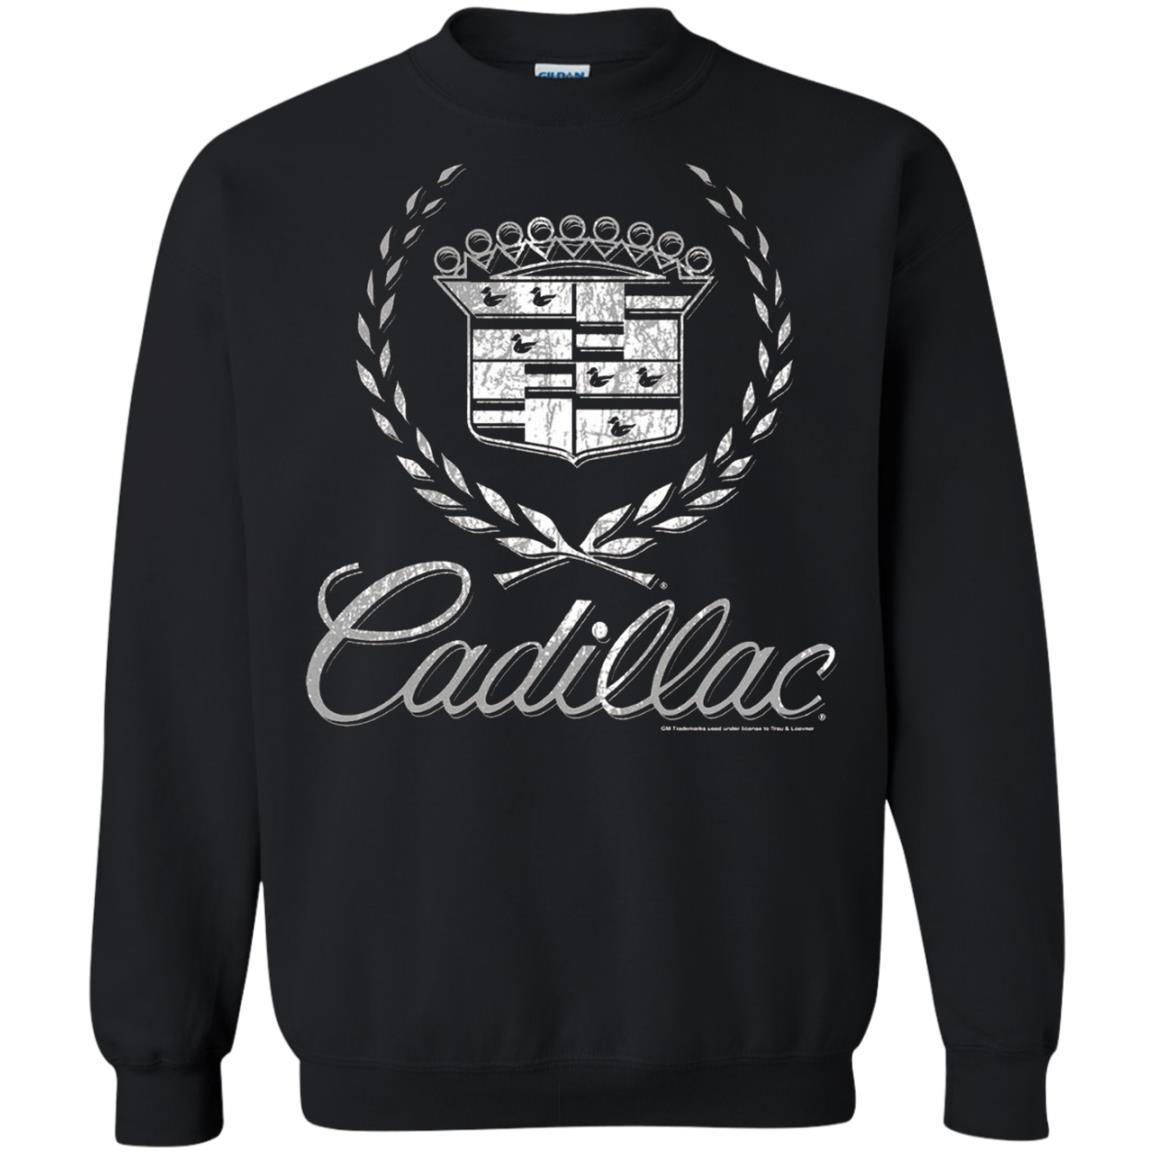 Cadillac Logo T-Shirt Classic Look - Pullover Sweatshirt Style / Color / Size